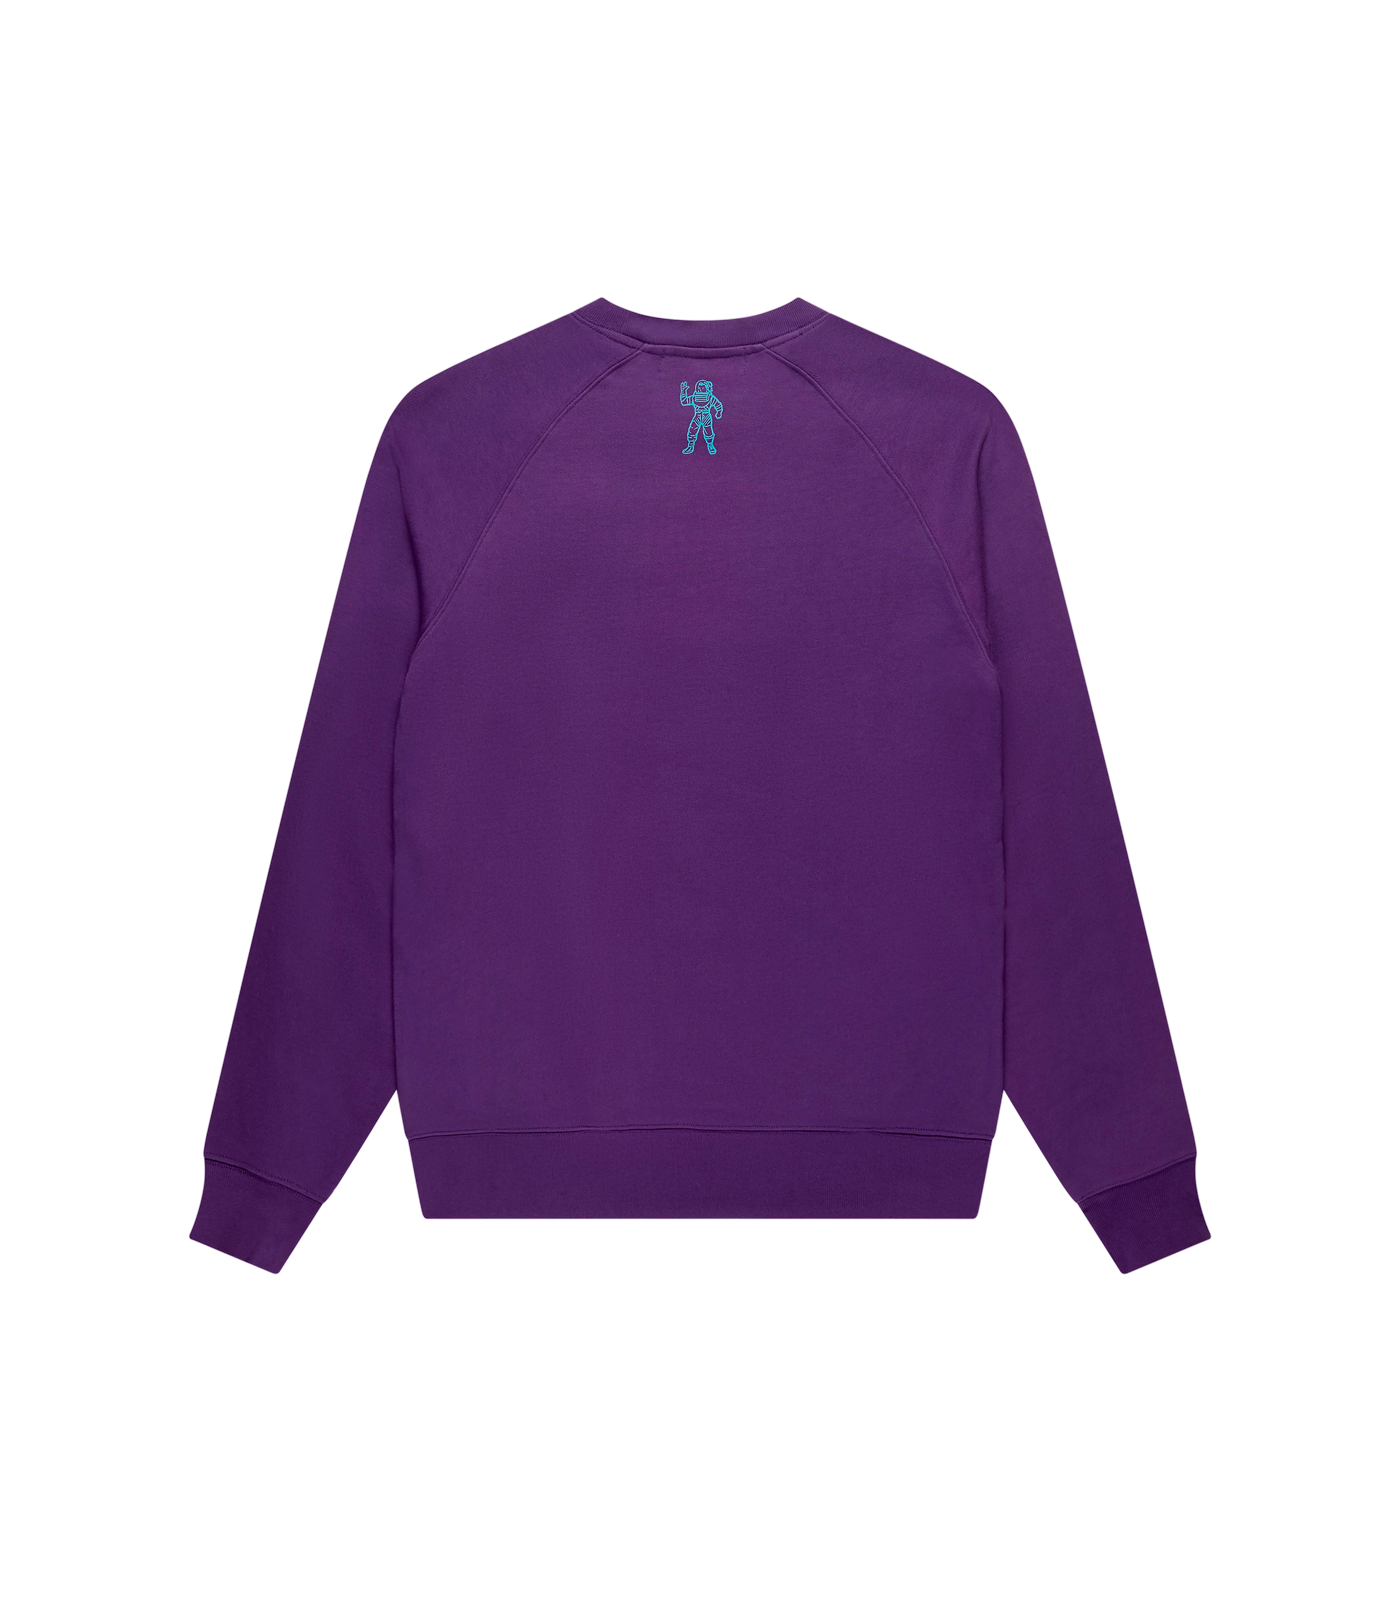 EMBROIDERED LOGO CREWNECK - PURPLE